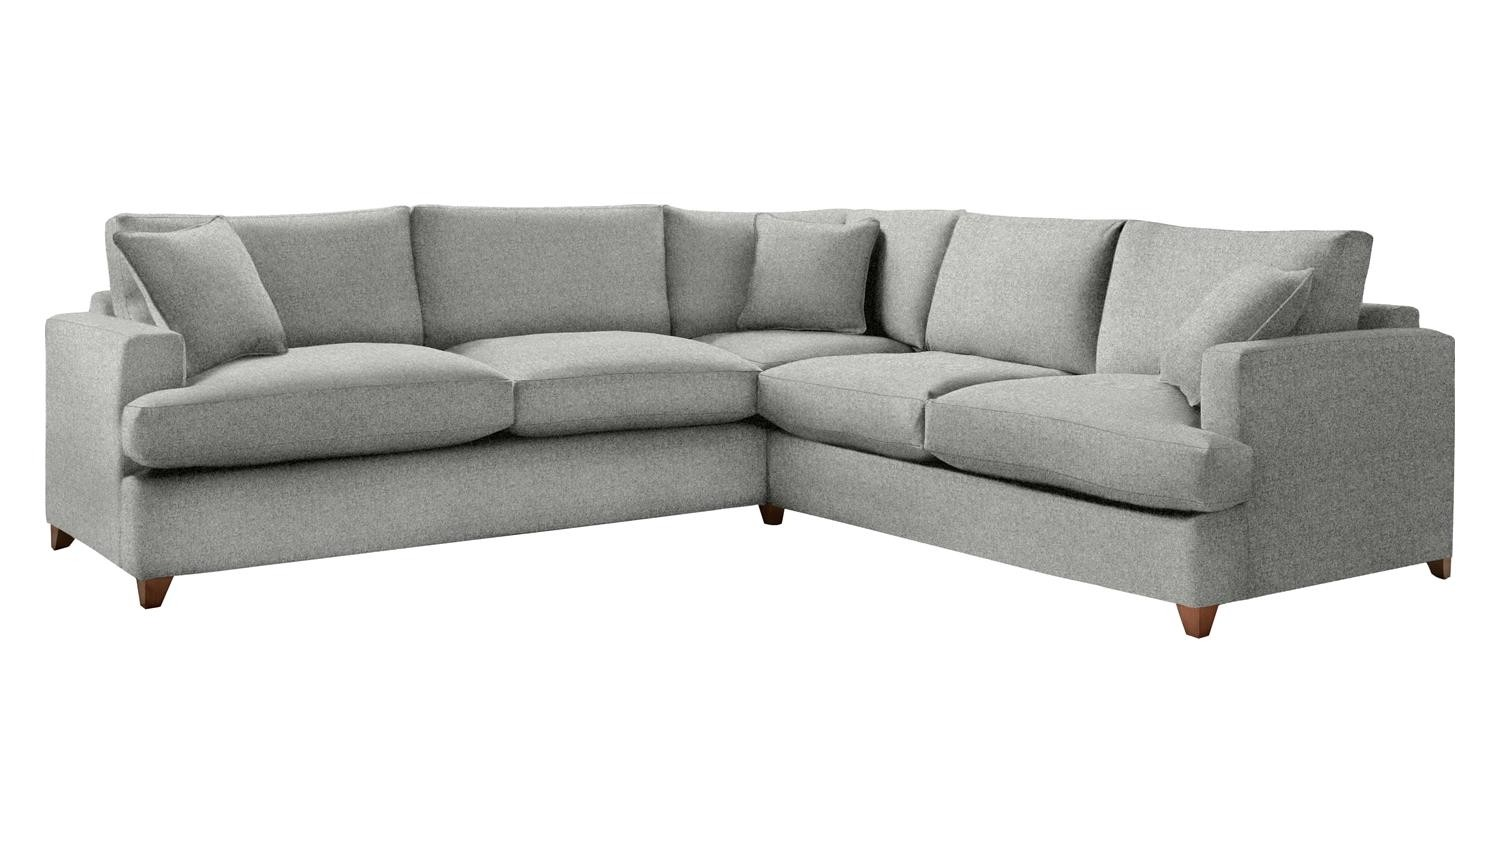 The Fyfield 7 Seater Corner Sofa Bed